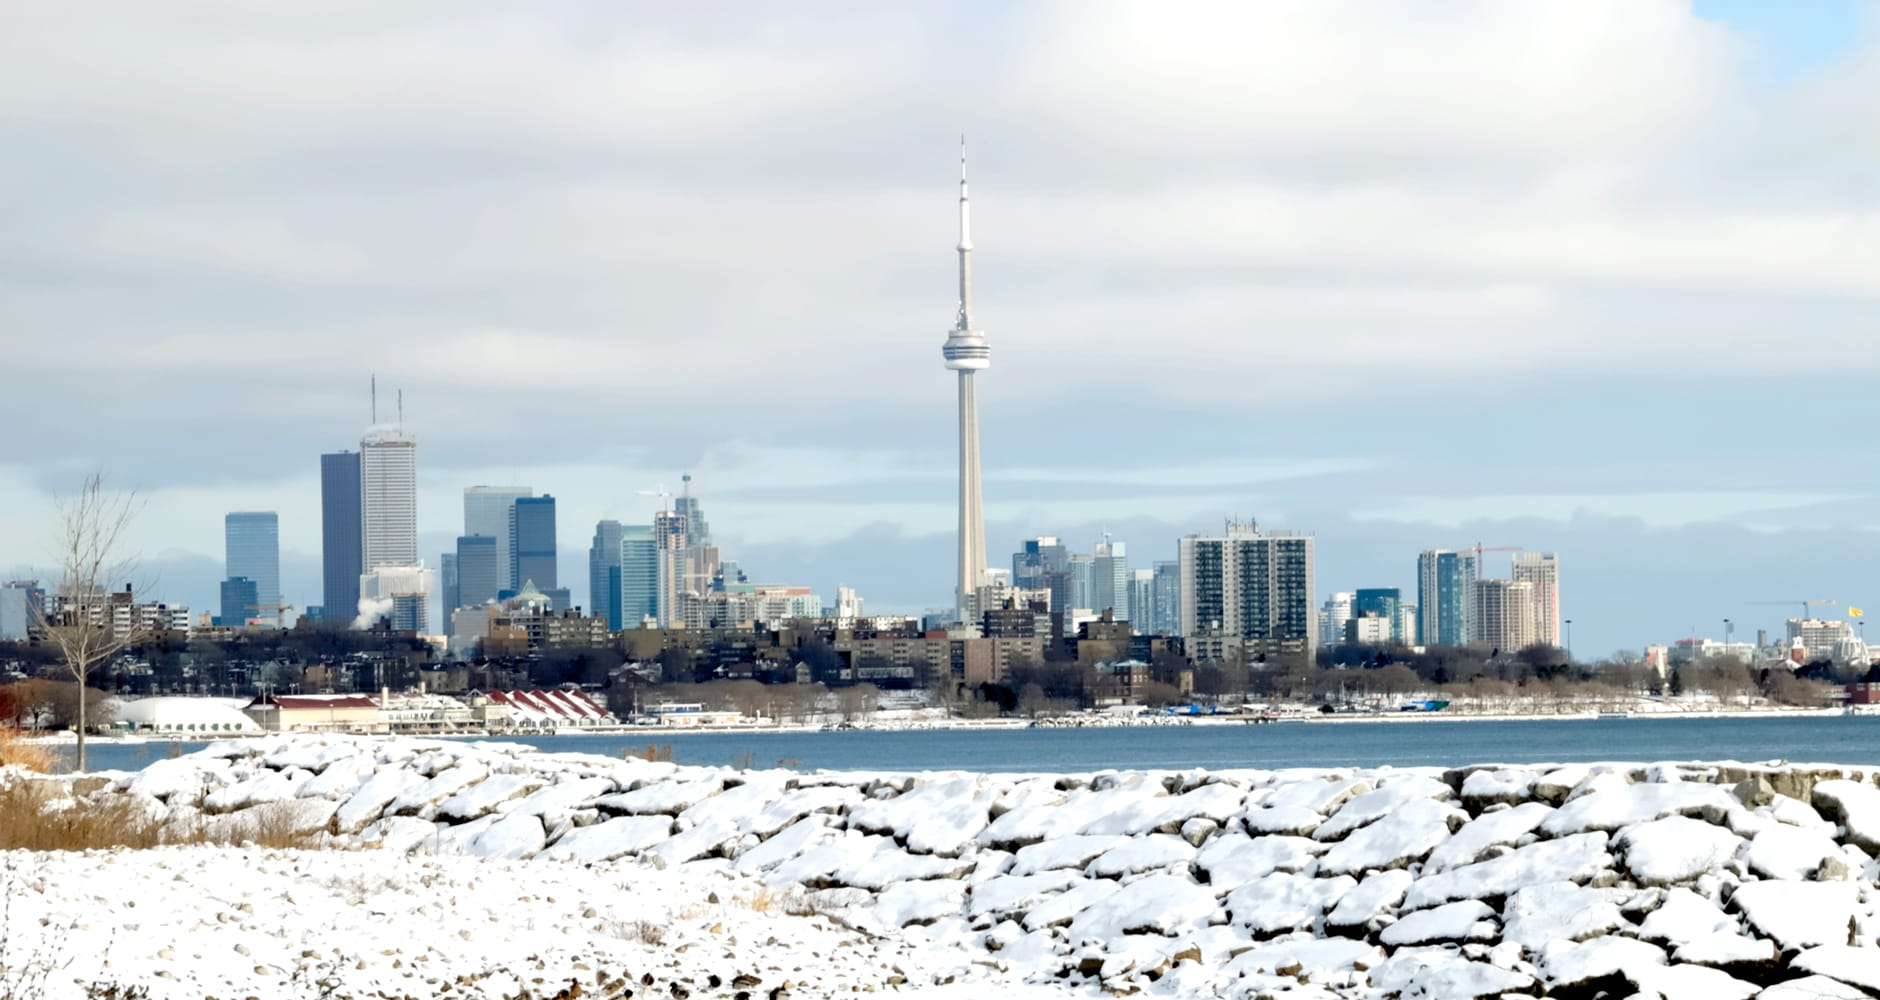 Farmers' Almanac's 2019 Winter Weather Forecast for Canadaimage preview